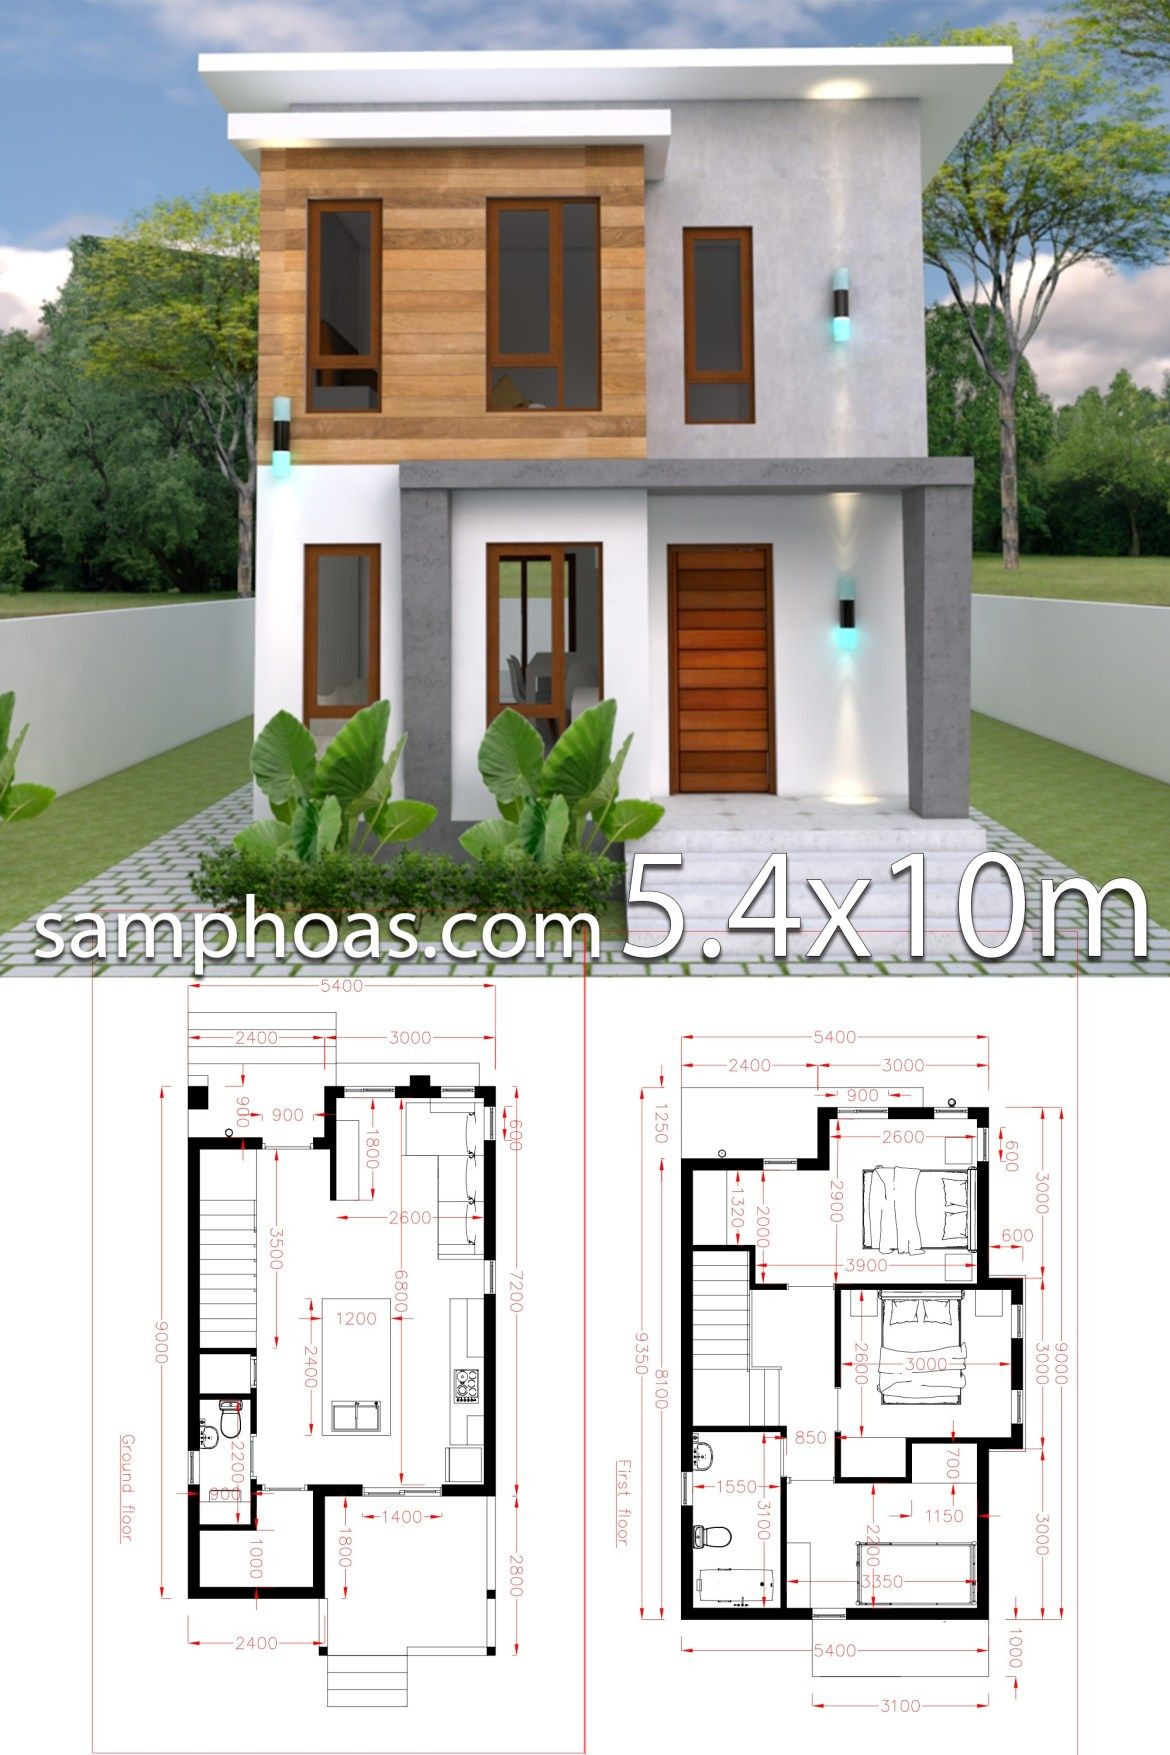 Small Modern Contemporary House Plans Best Of Small Home Design Plan 5 4x10m with 3 Bedroom